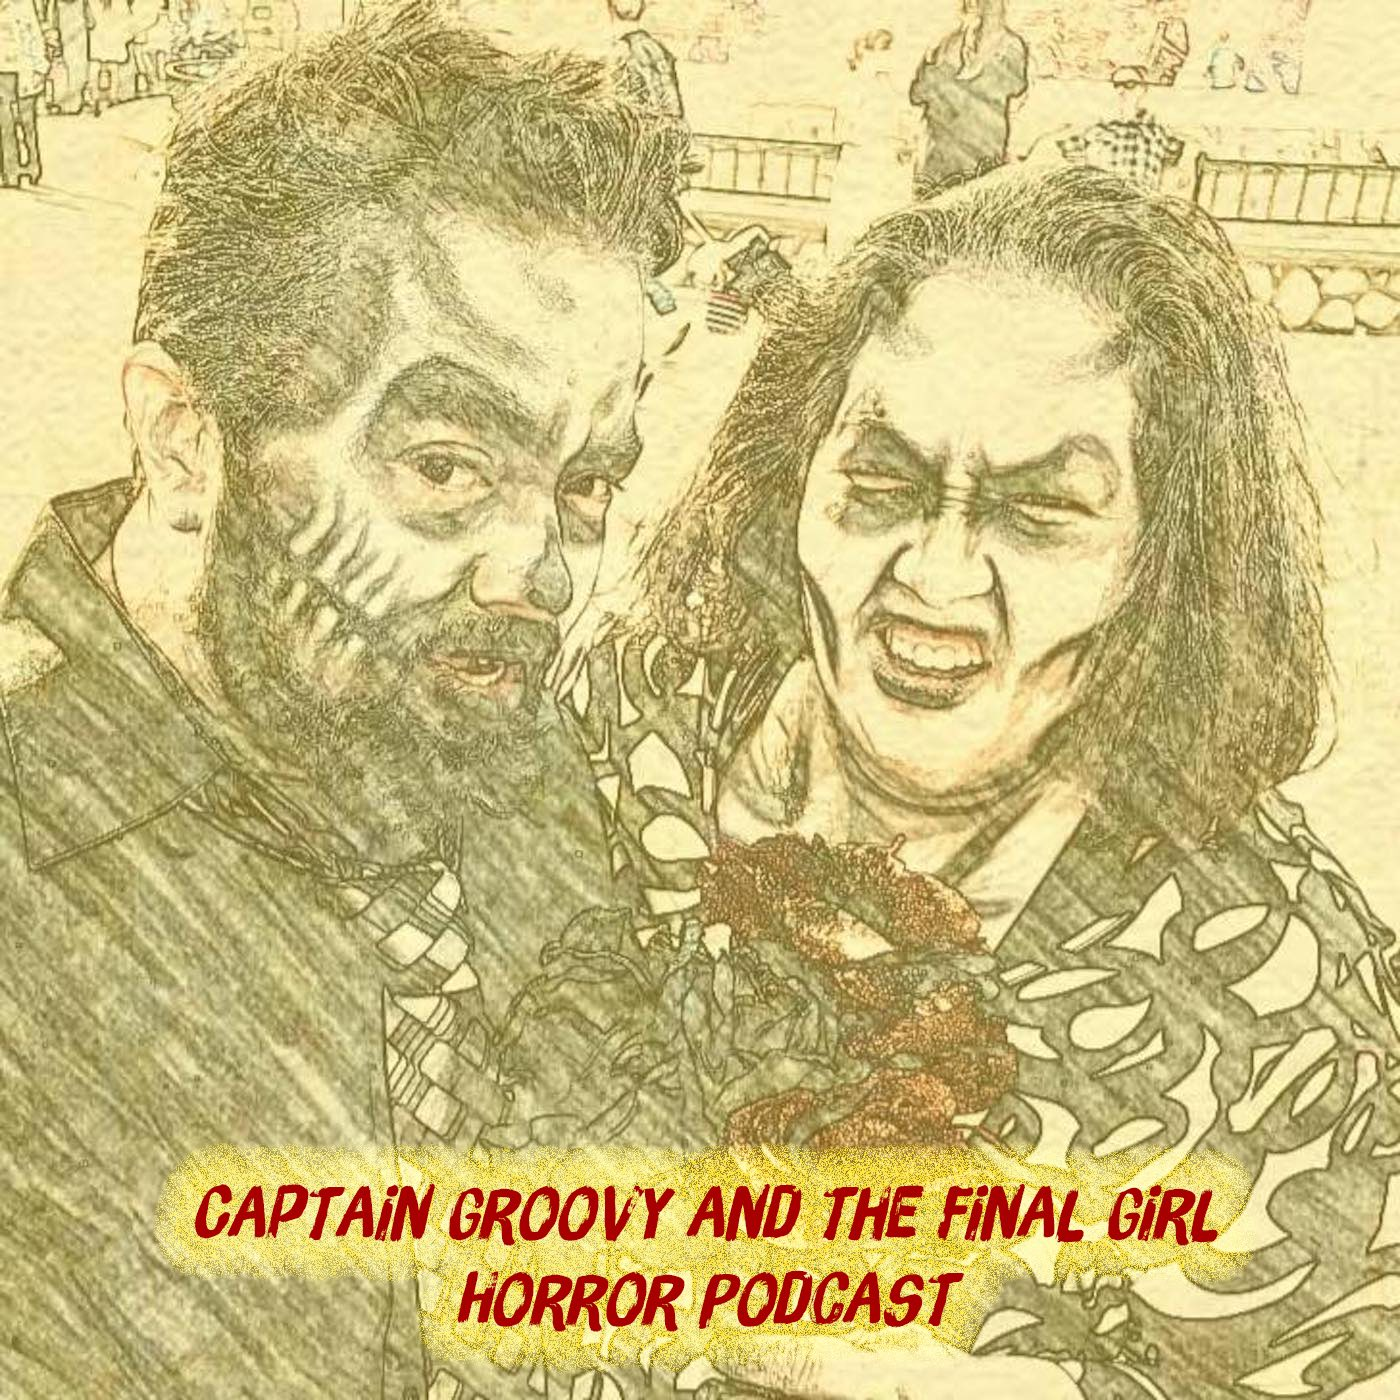 Captain Groovy and The Final Girl – Outlaw Media Productions